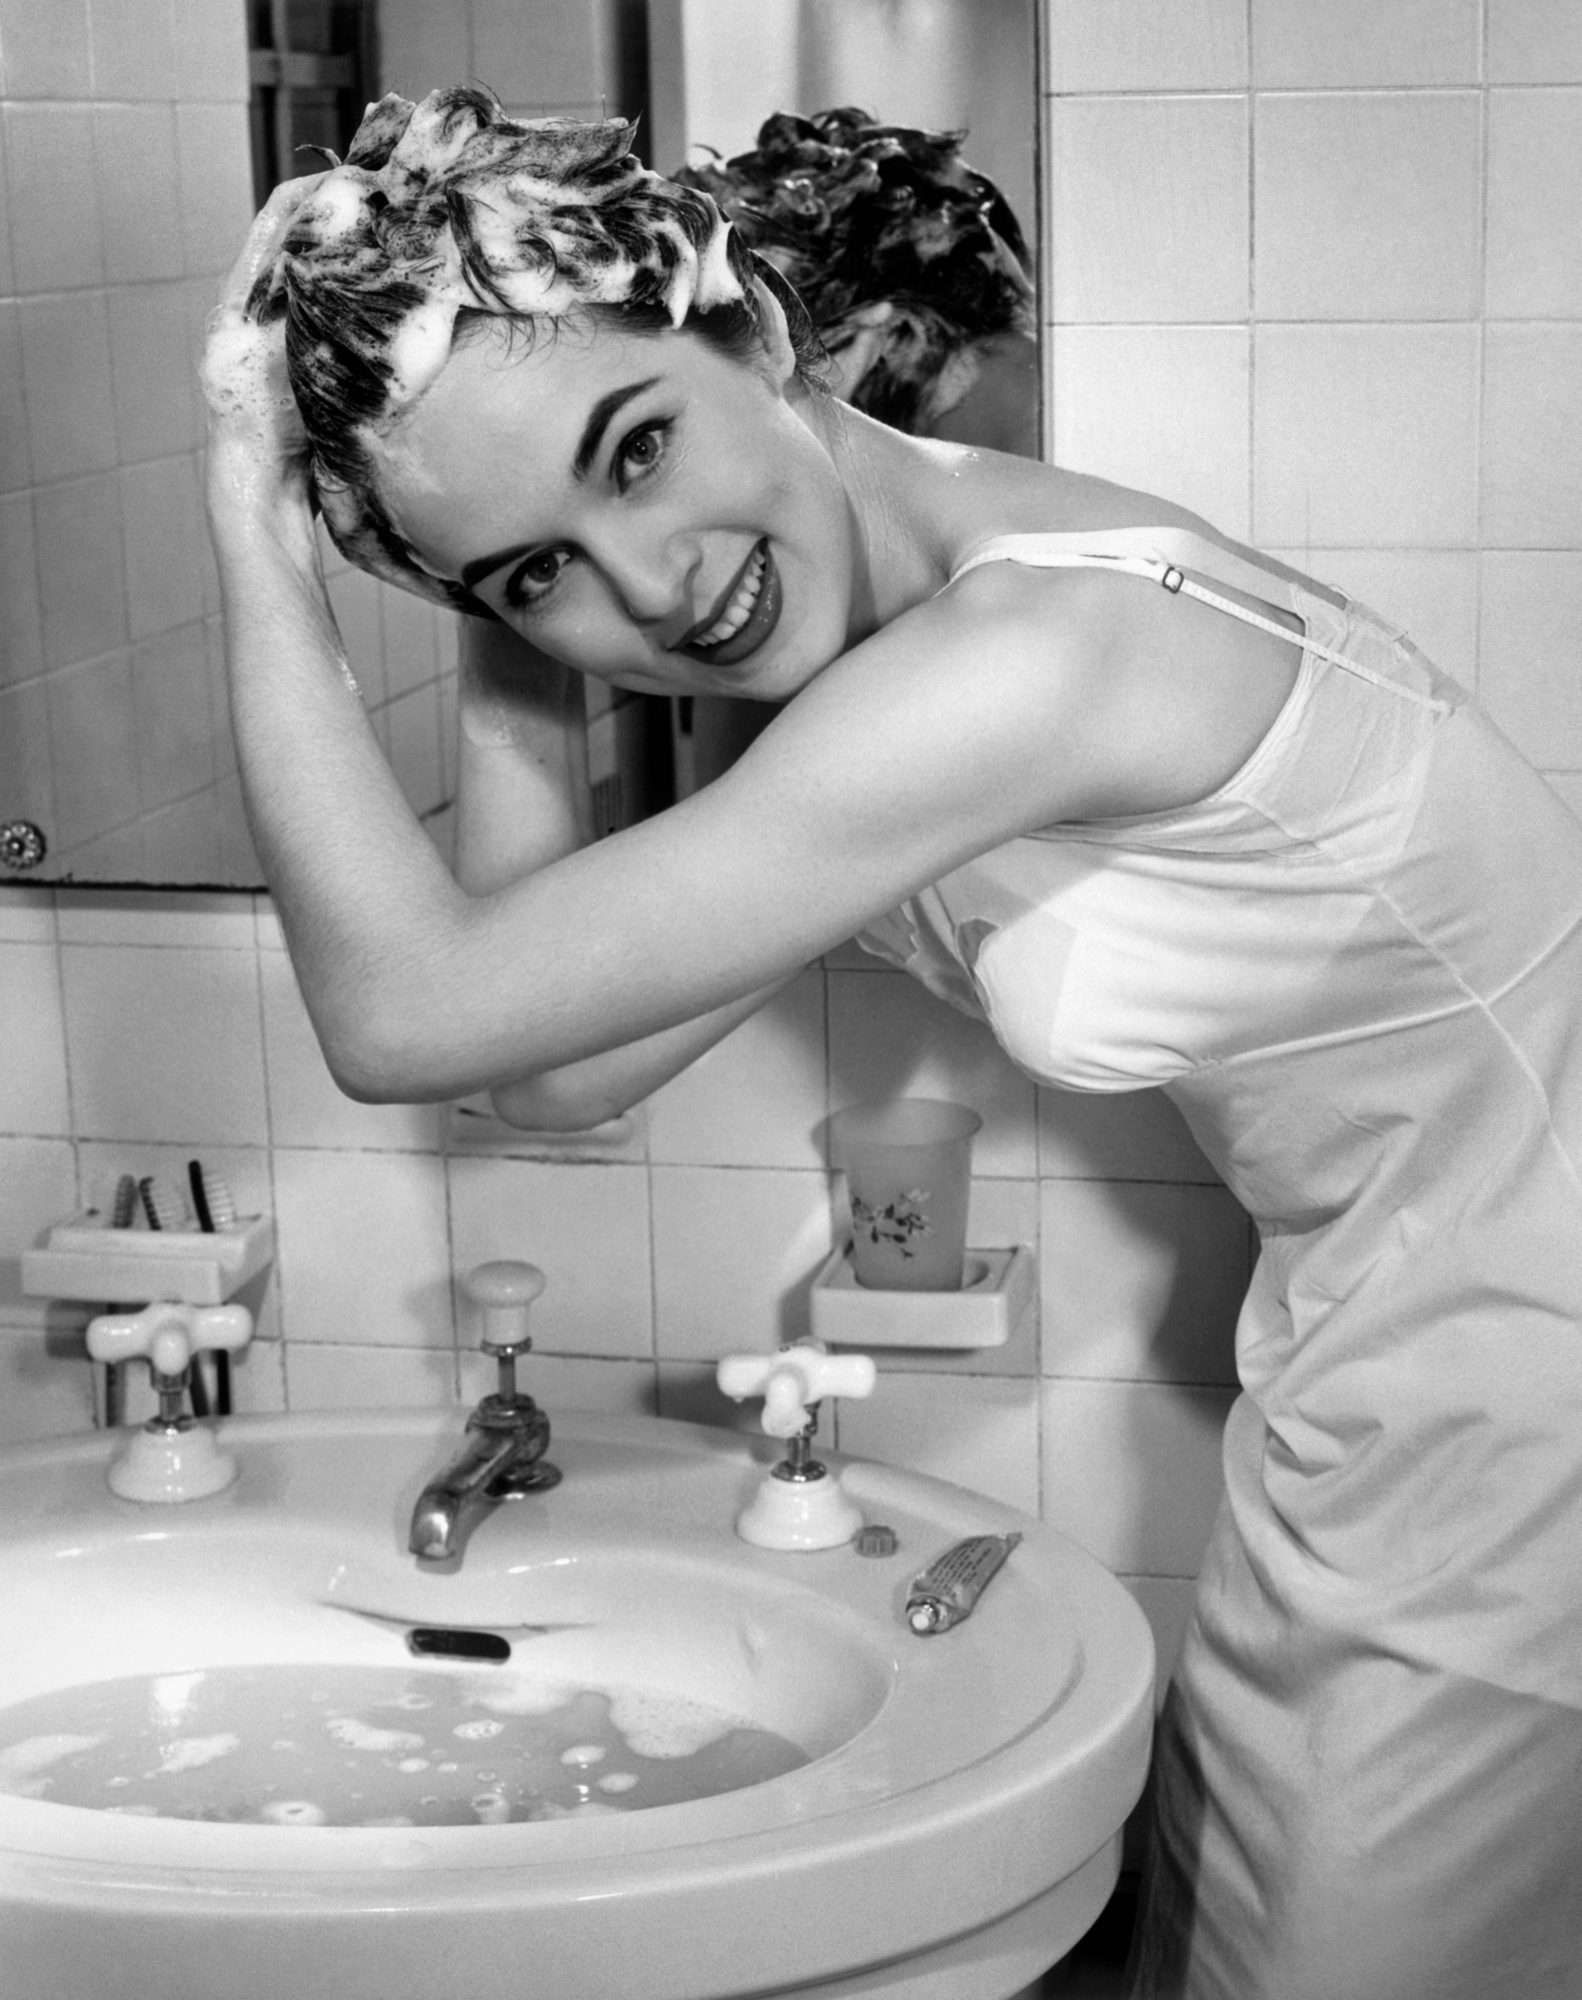 Woman Washing Hair in Sink